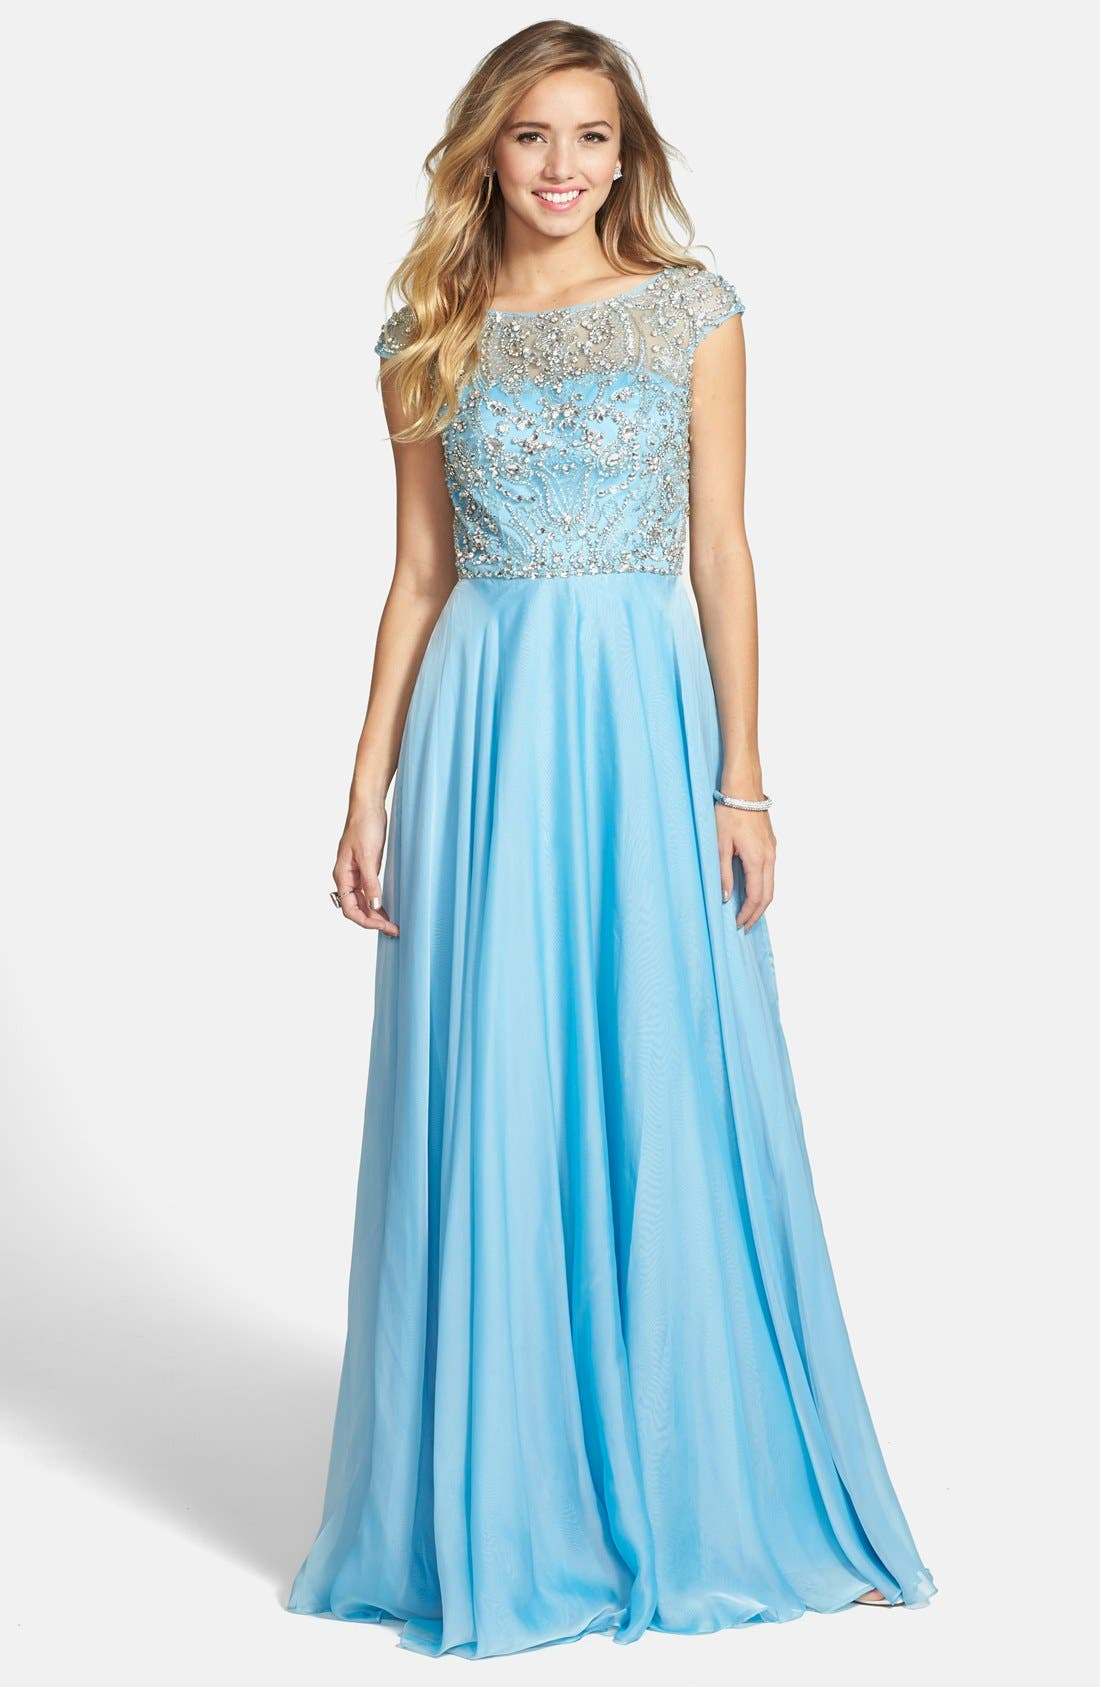 Alternate Image 1 Selected - Sherri Hill Embellished Illusion Bodice Gown